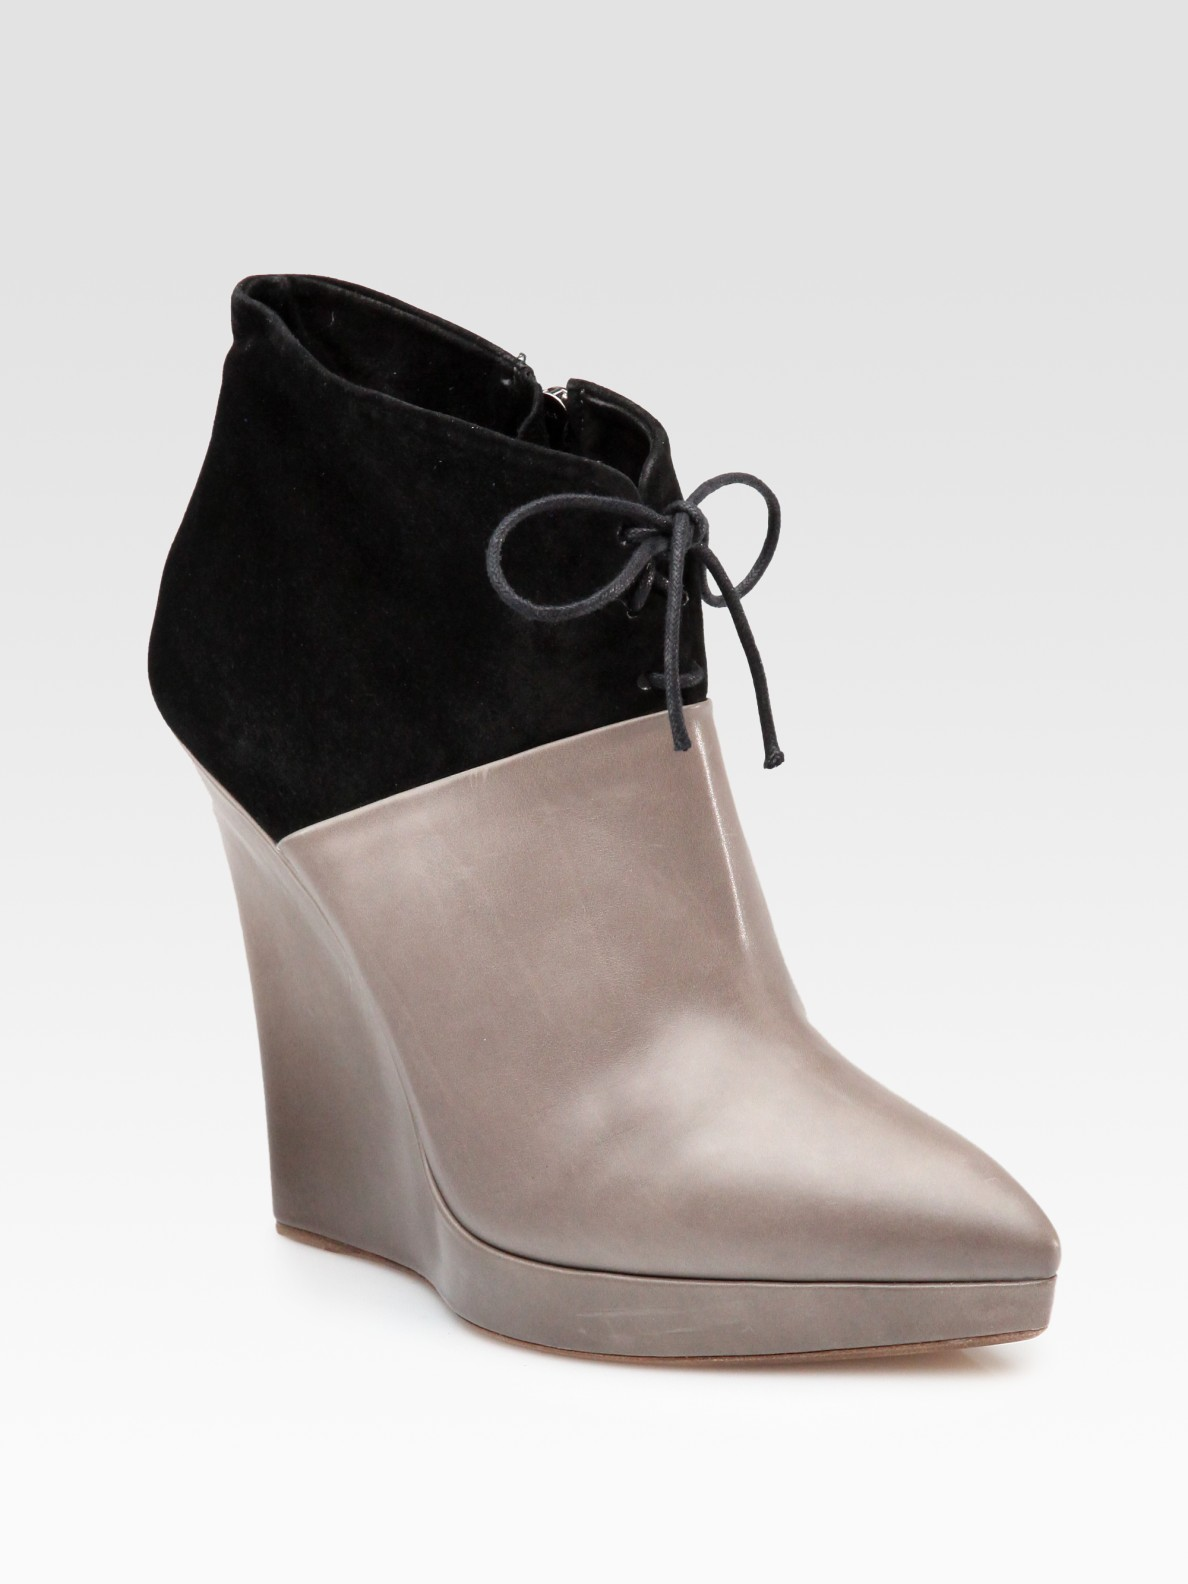 reed krakoff leather and suede point toe wedge ankle boots